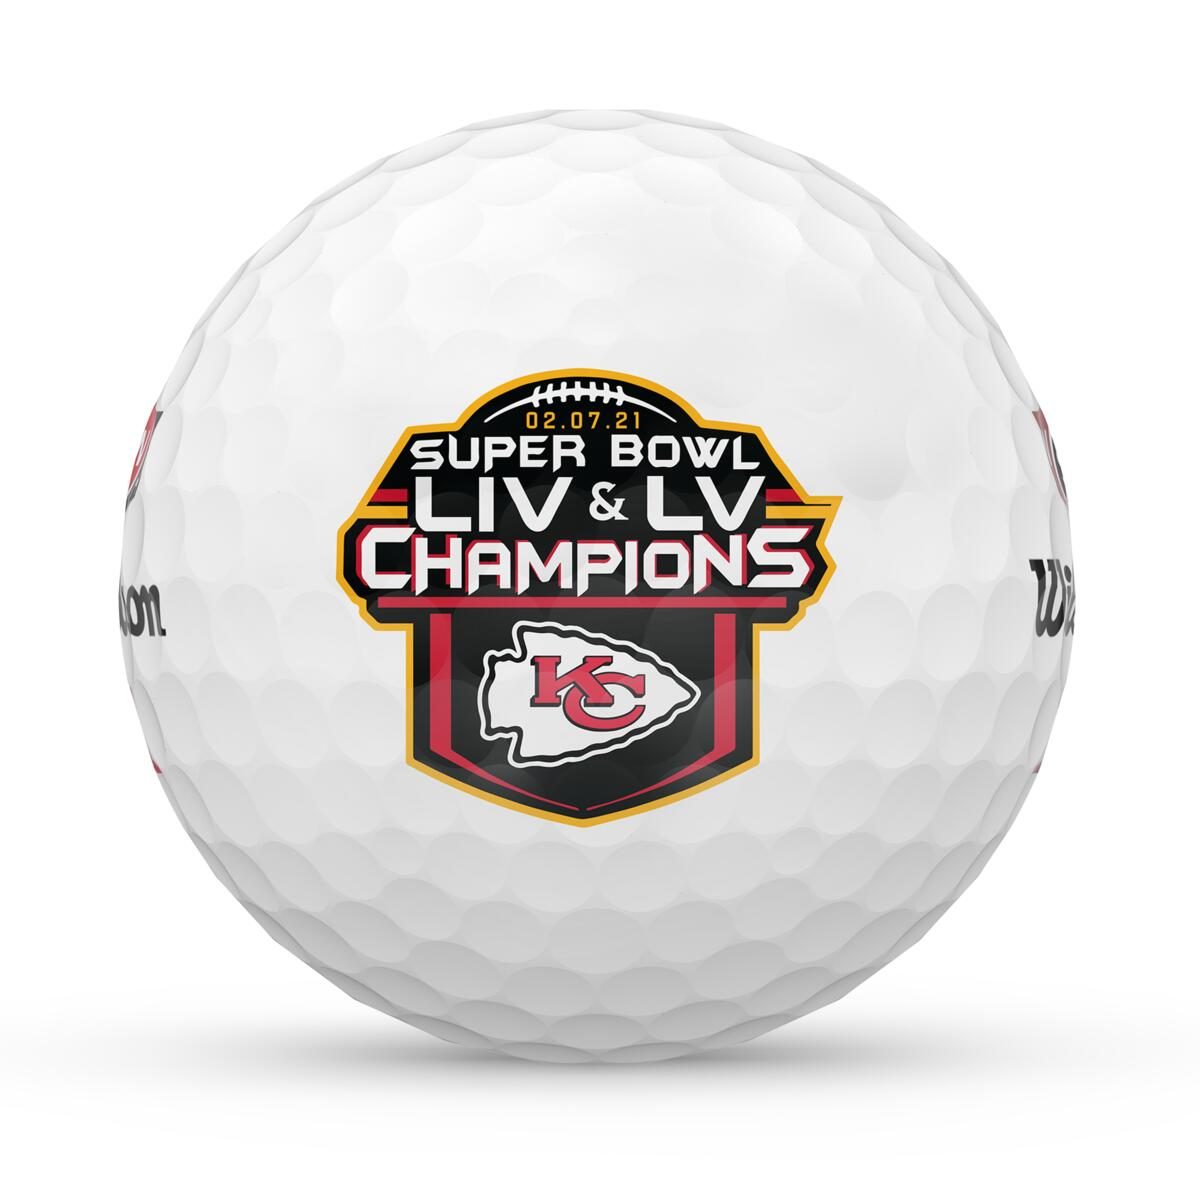 Tampa Bay Buccaneers - DUO Soft+ Super Bowl Championship Golf Balls (12-pack)